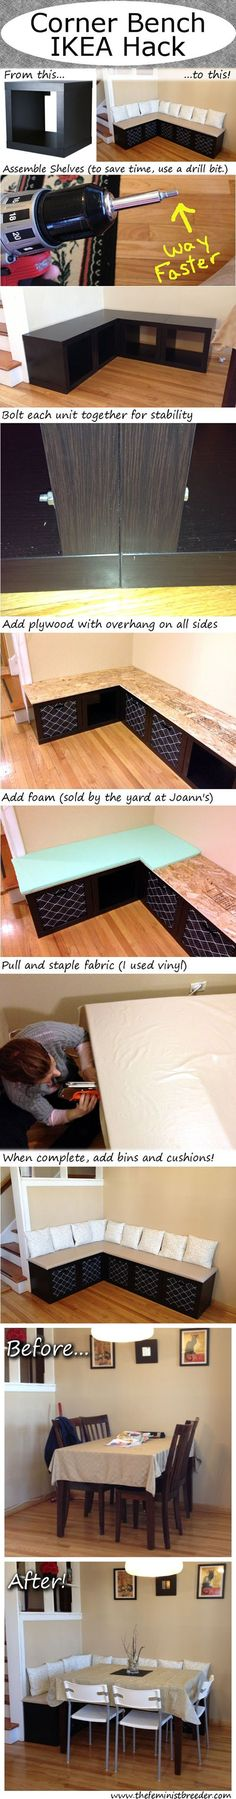 Diy Corner Bench | DIY & Crafts